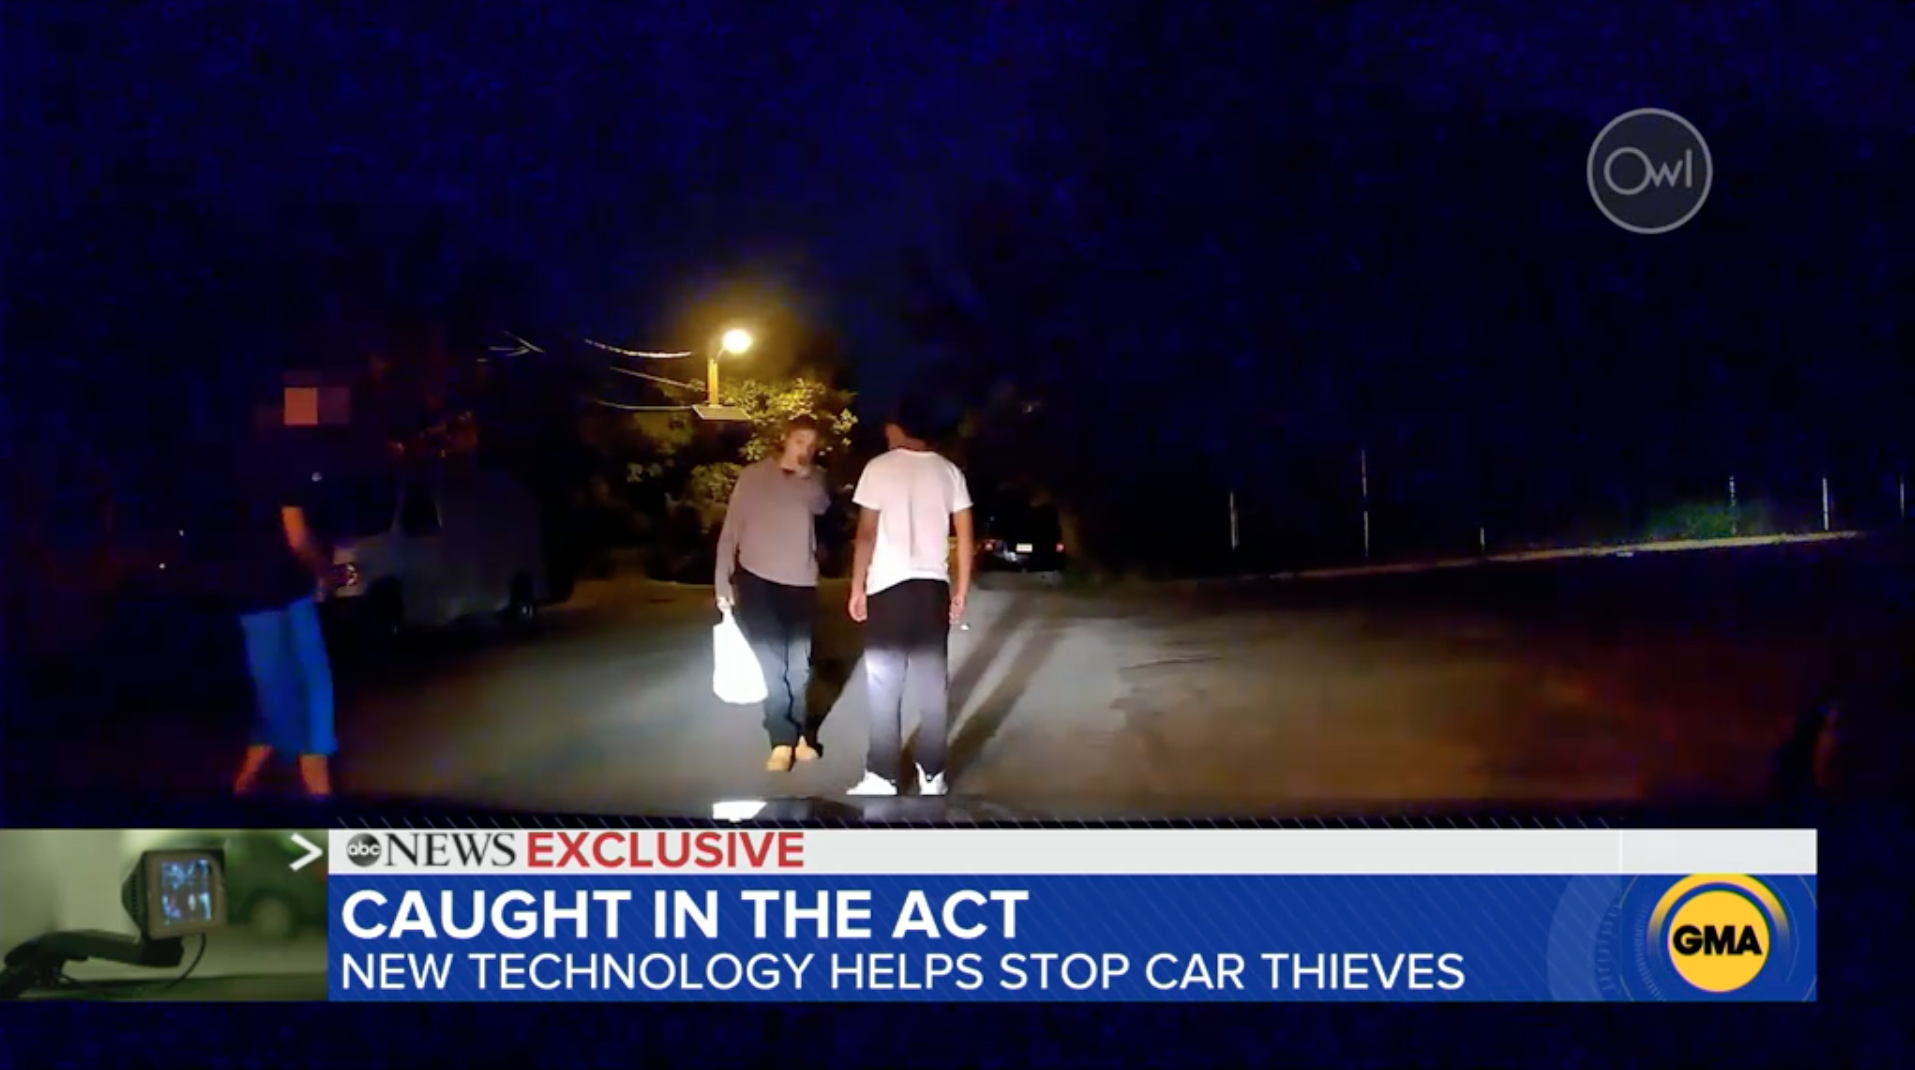 car_camera_catches_thief_in_the_act(1)